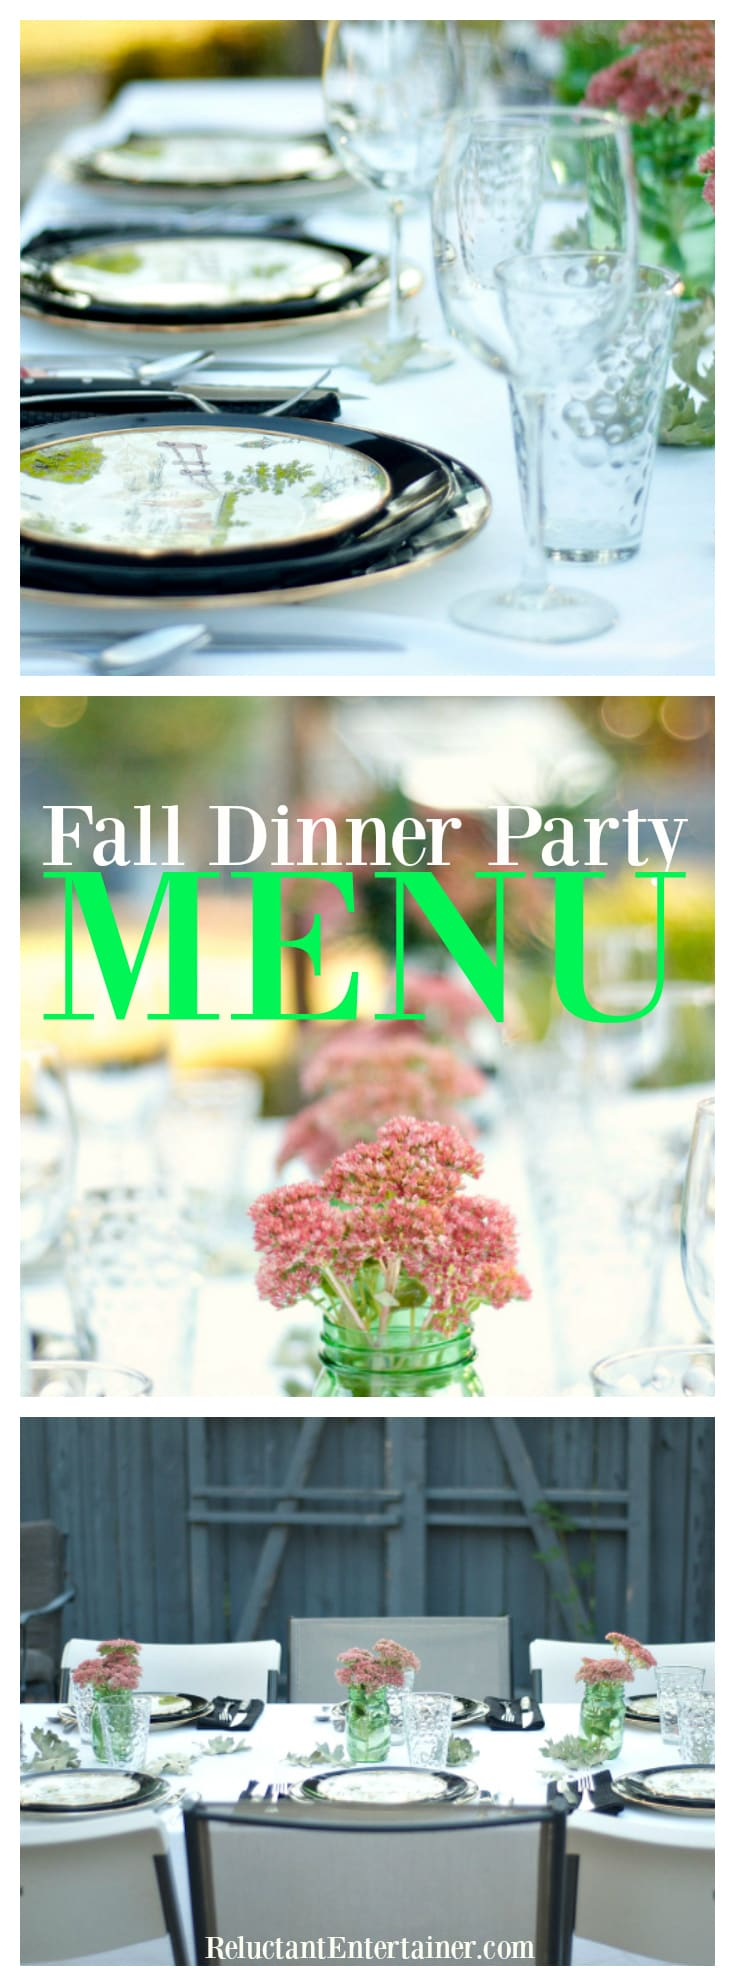 Fall Dinner Party Menu+ Pumpkin Cake with Maple Frosting